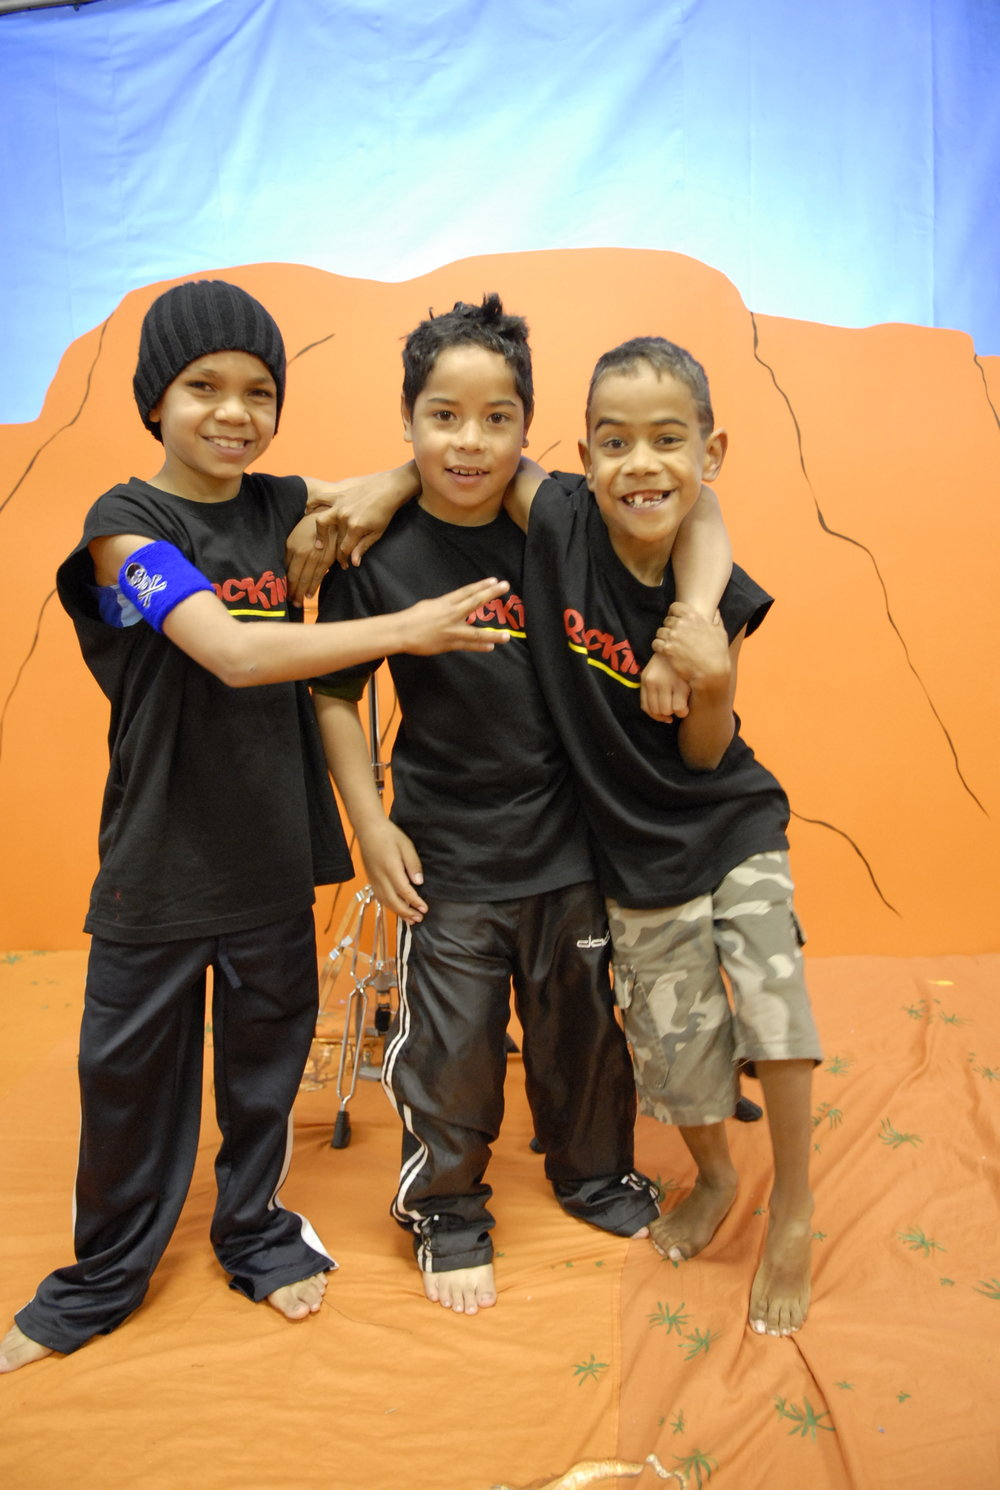 Aboriginal boys enjoying a rap song in front of Uluru prop before the Kangaroo Rock clip